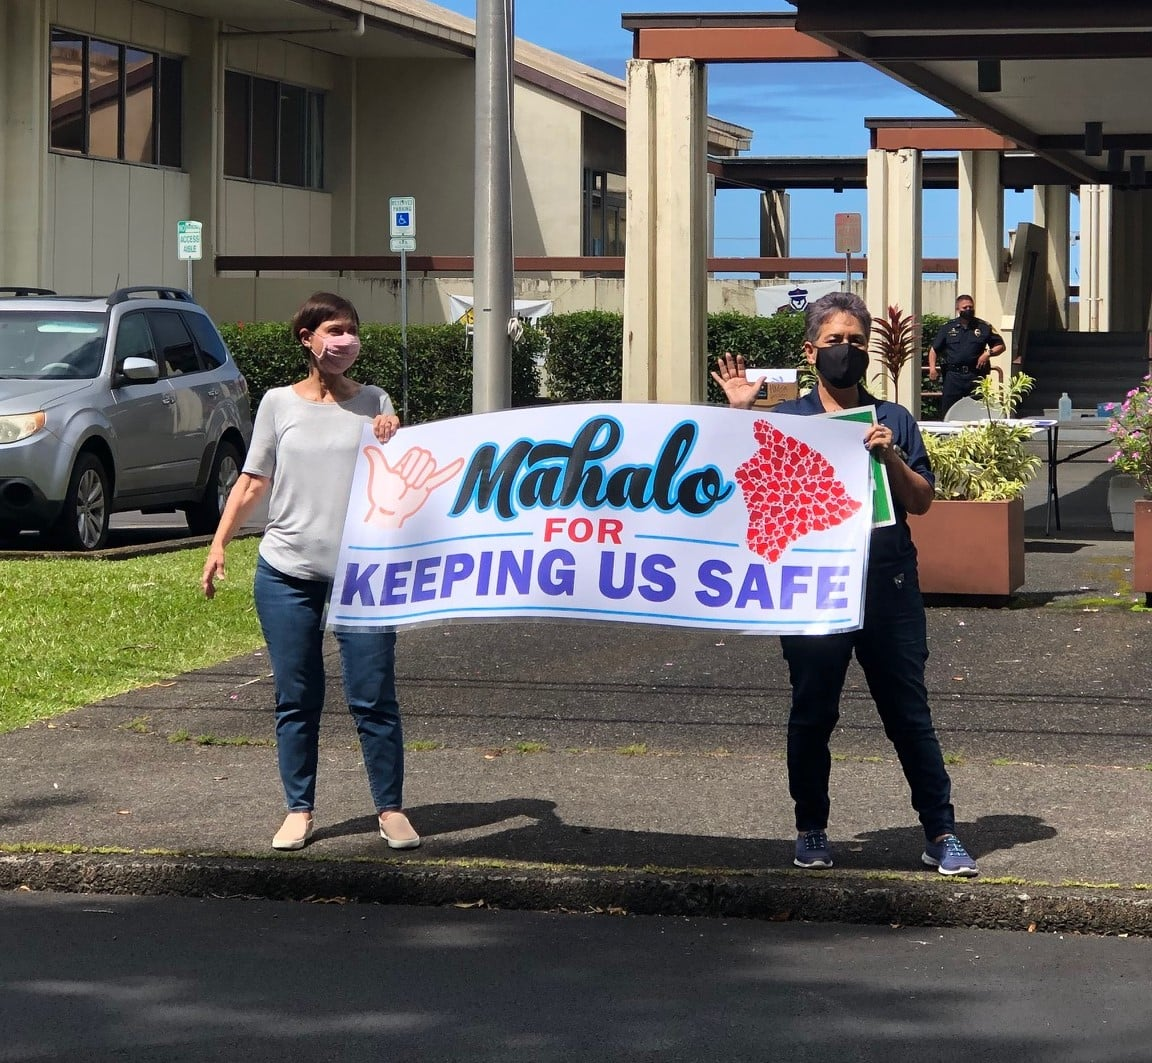 Hawaii Turning Heated Arguments into 'Justification' for Taking Your Guns